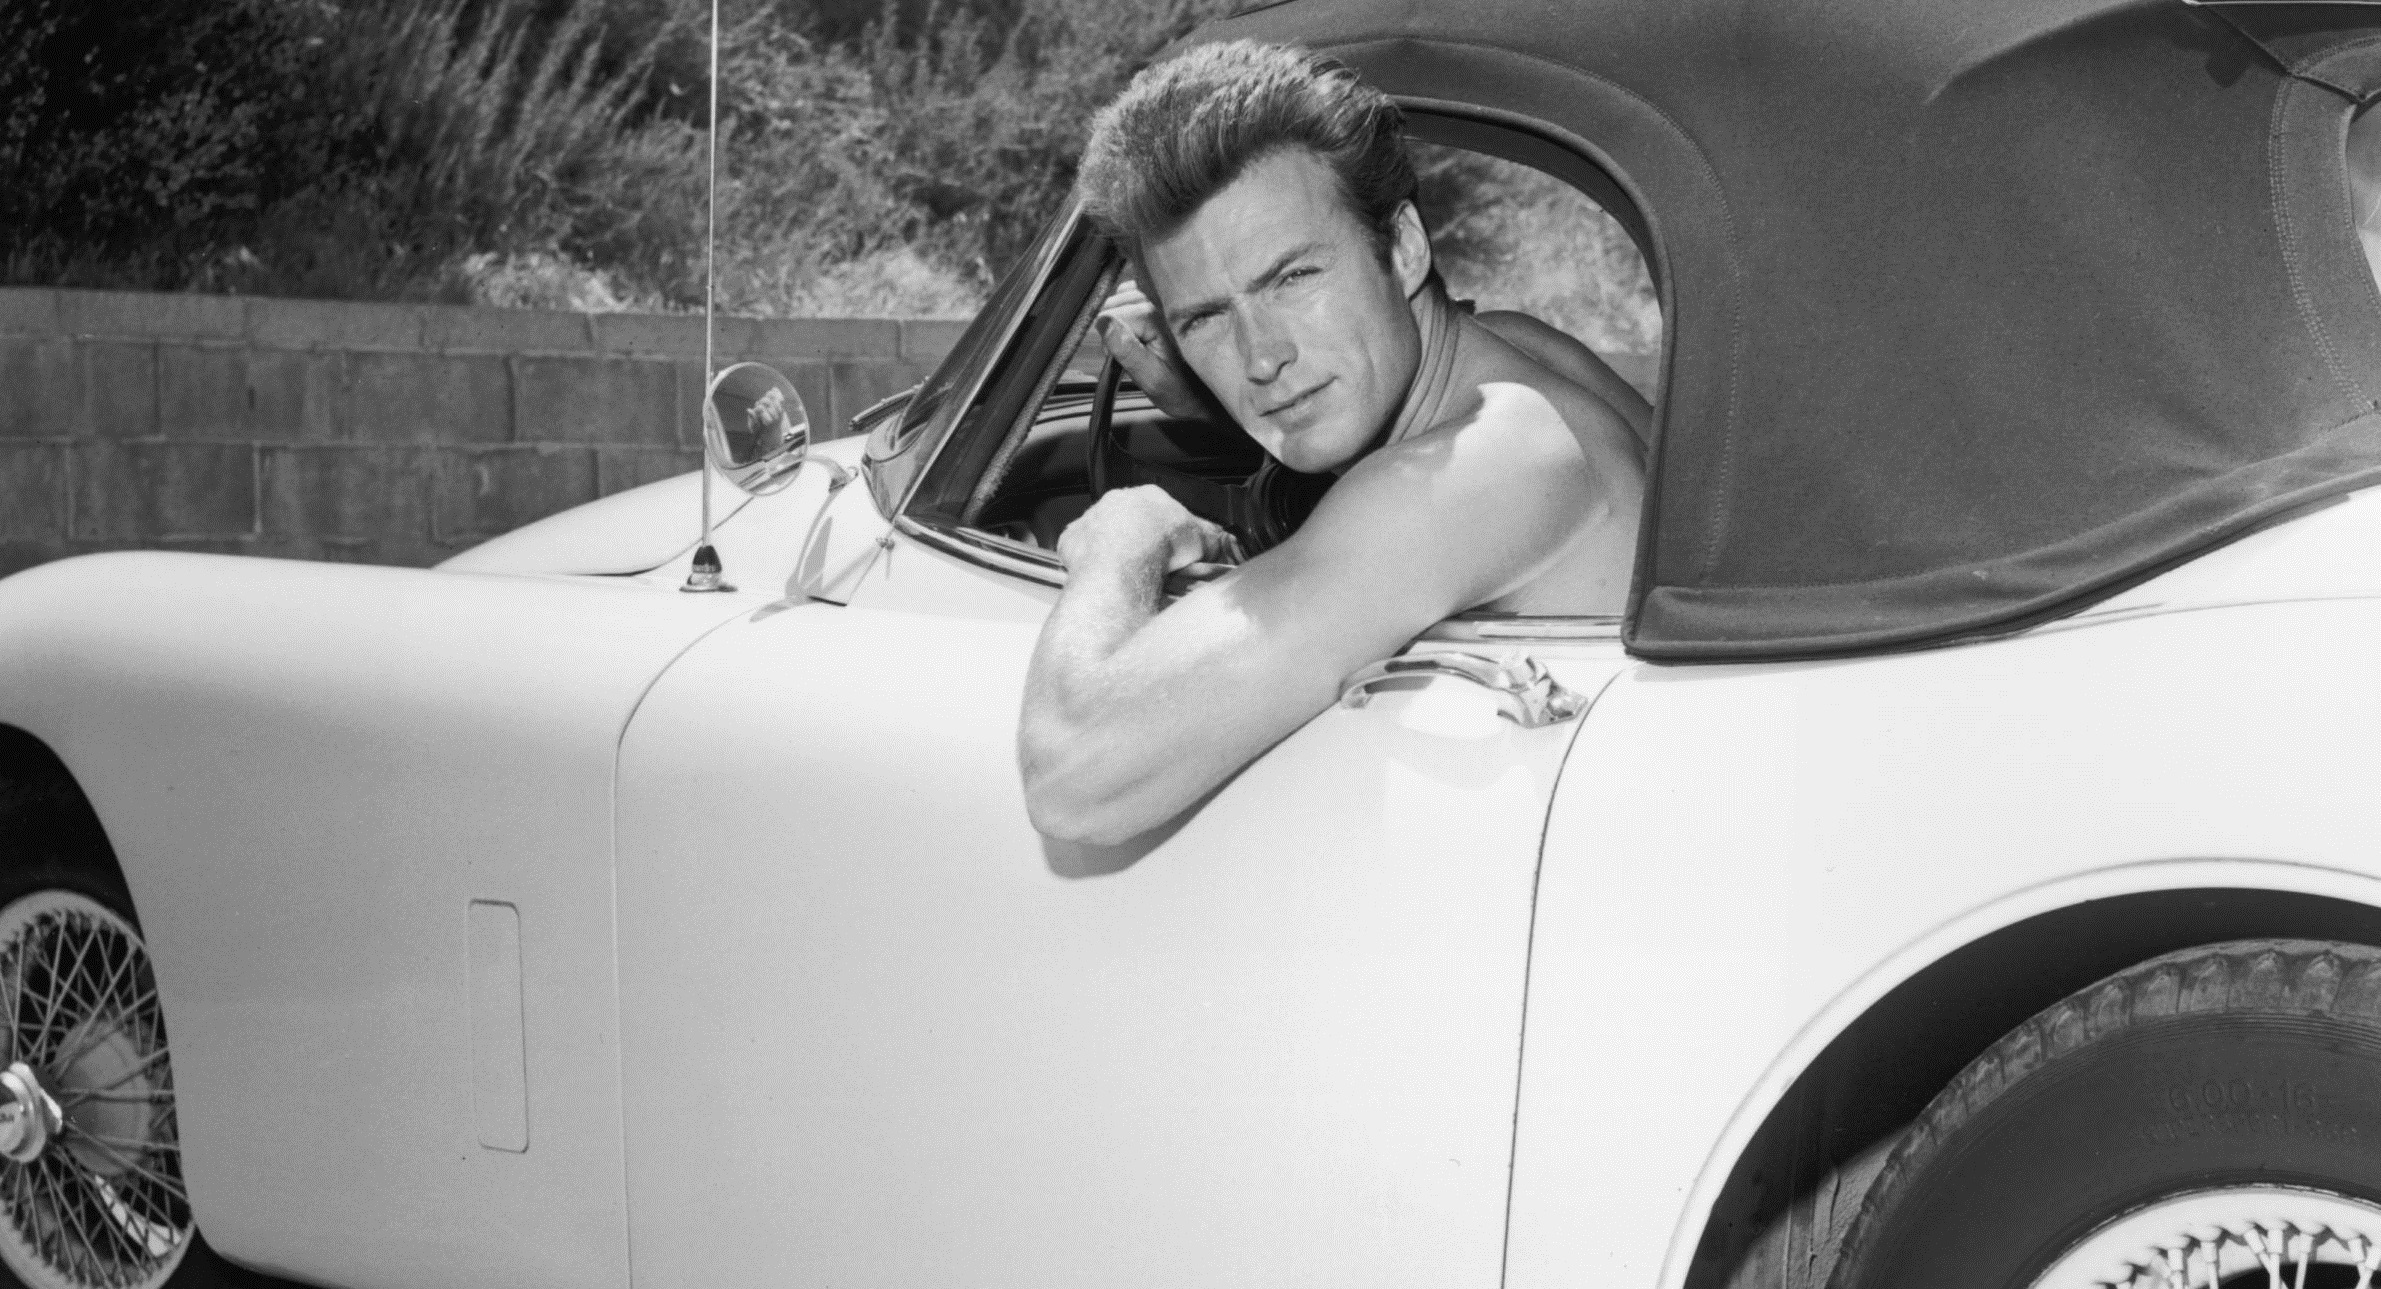 1965: Clint Eastwood in his Jaguar XK150 roadster